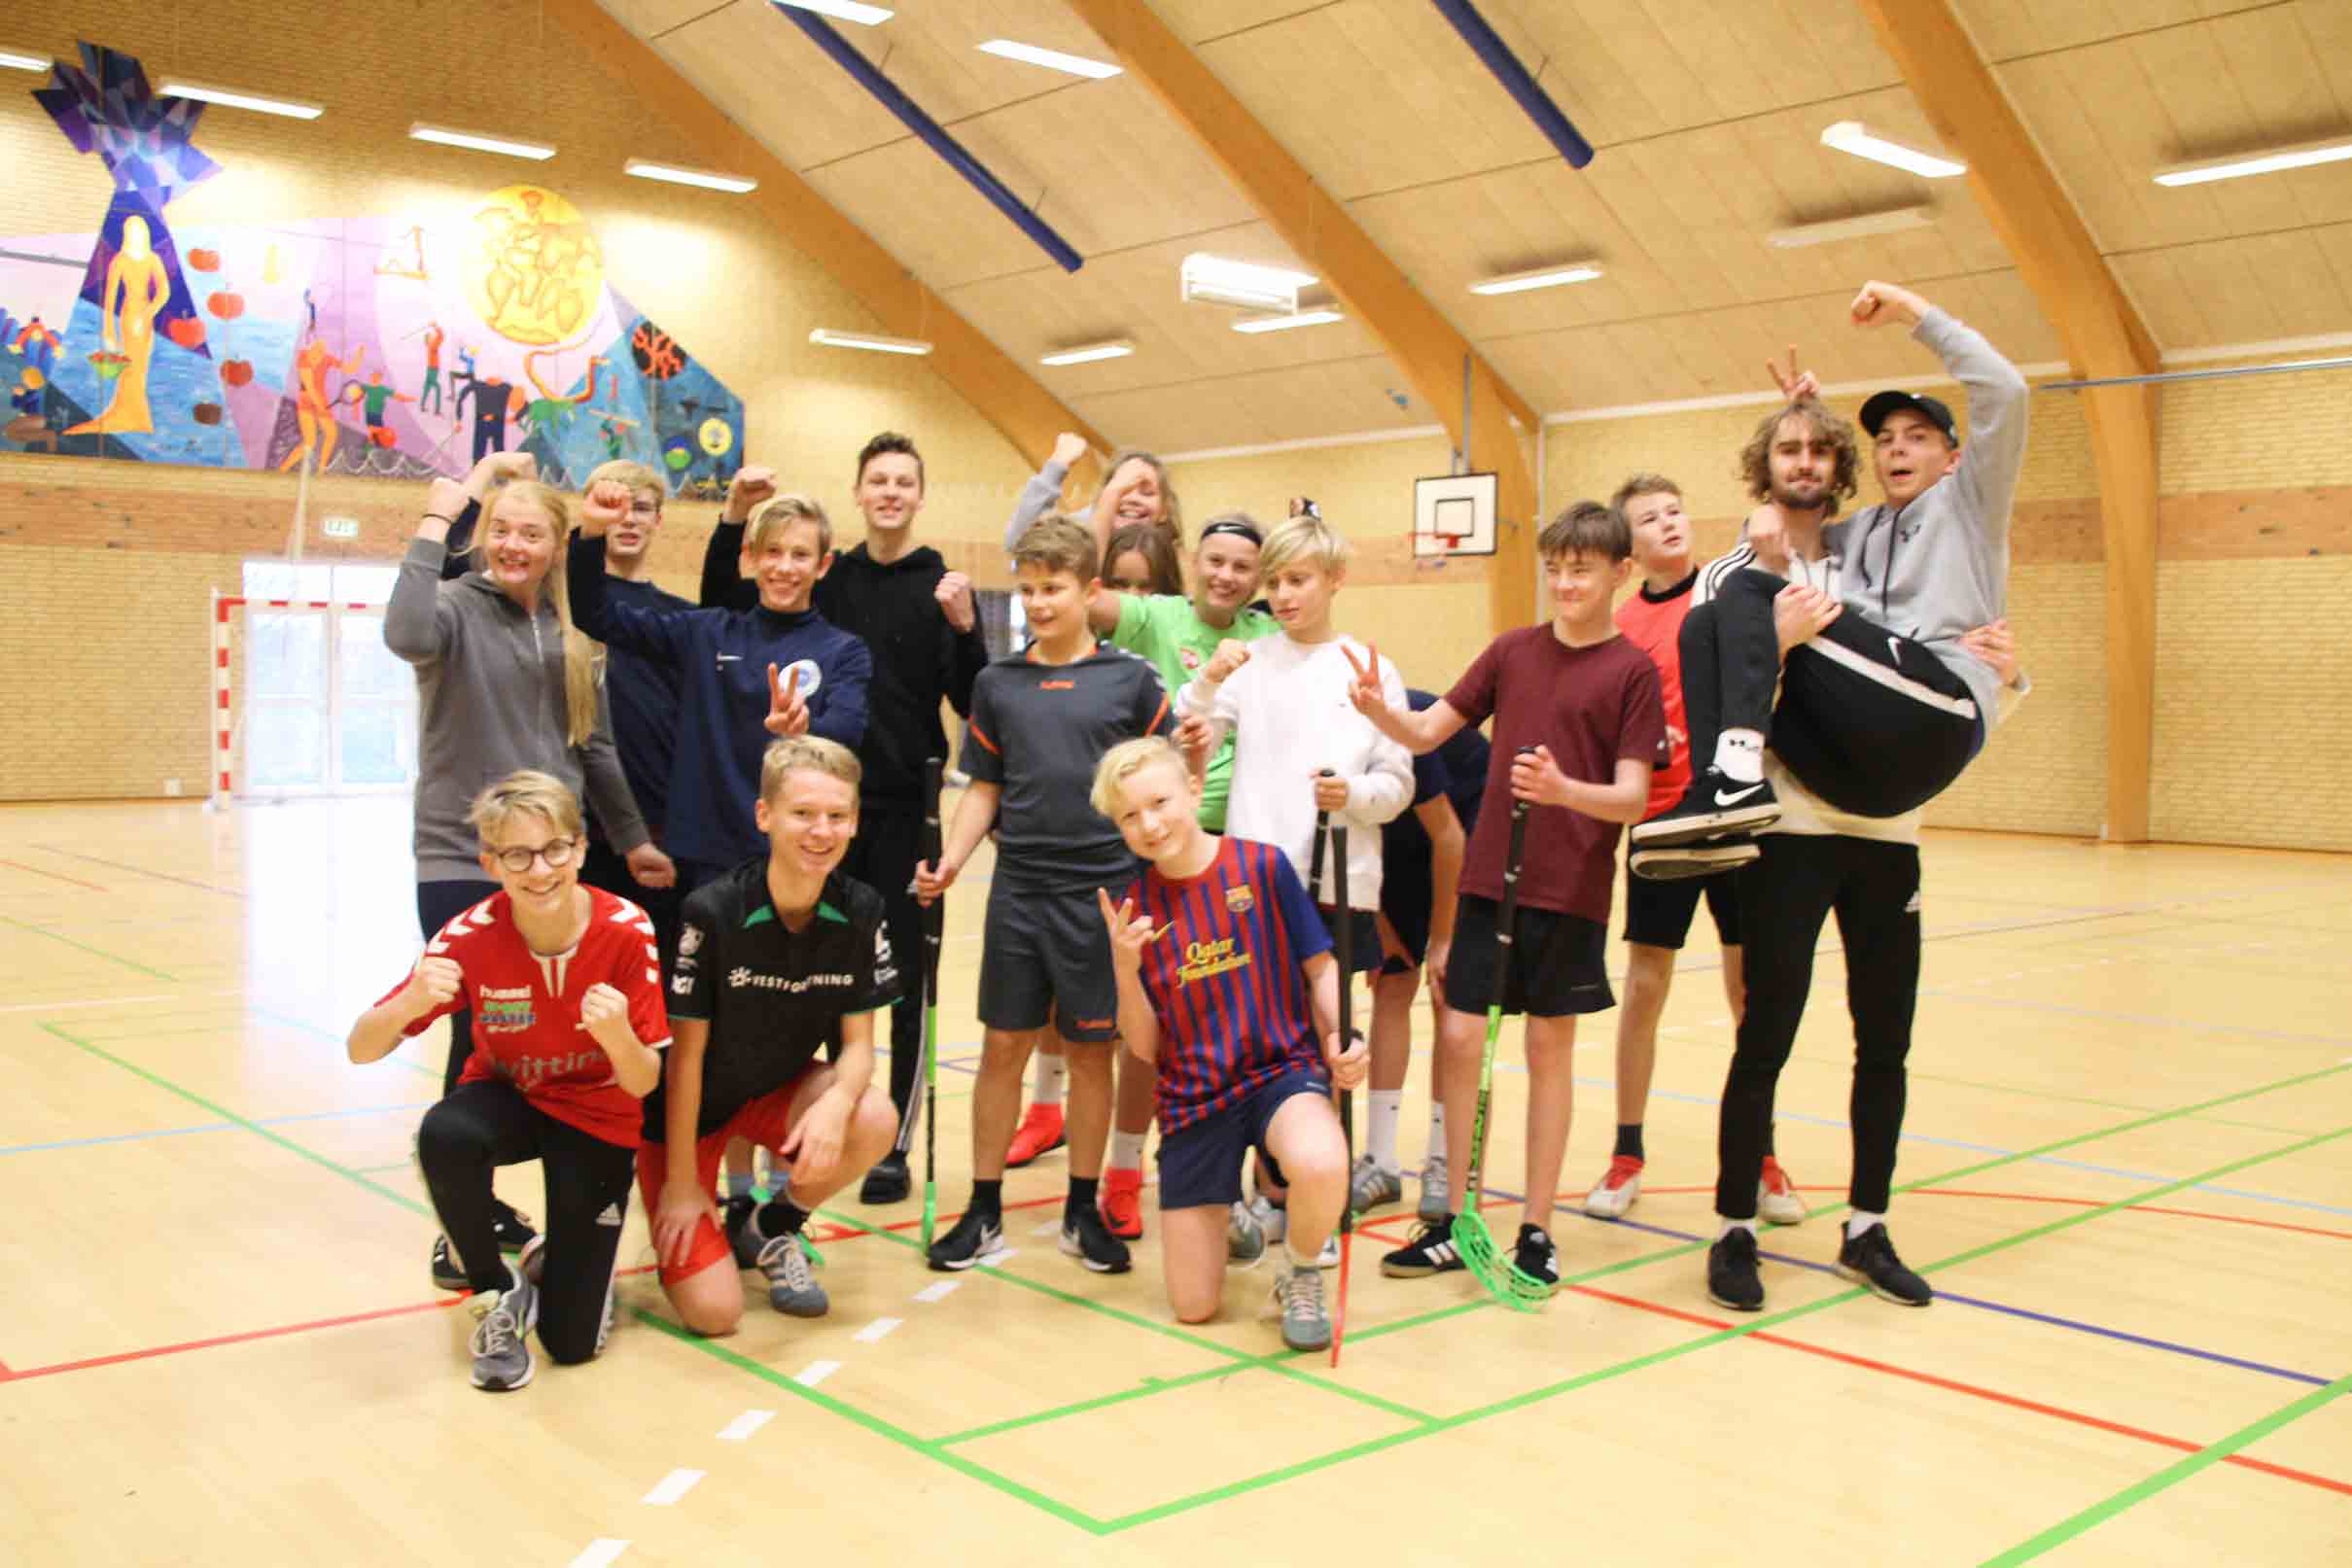 konfirmandweekend-paa-efterskole